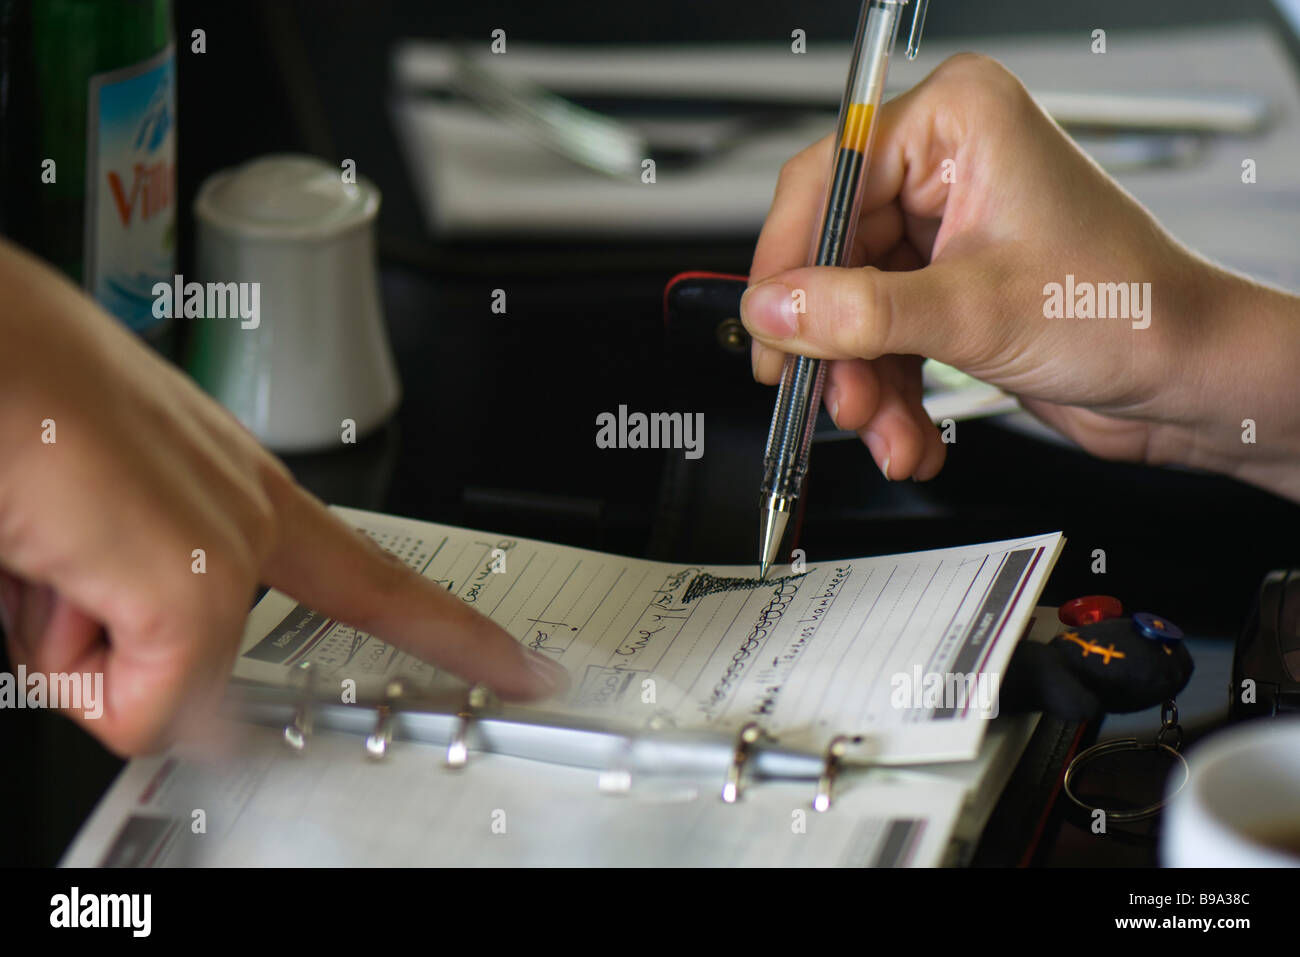 Two people making plans using agenda, one holding pen while the other points to page - Stock Image